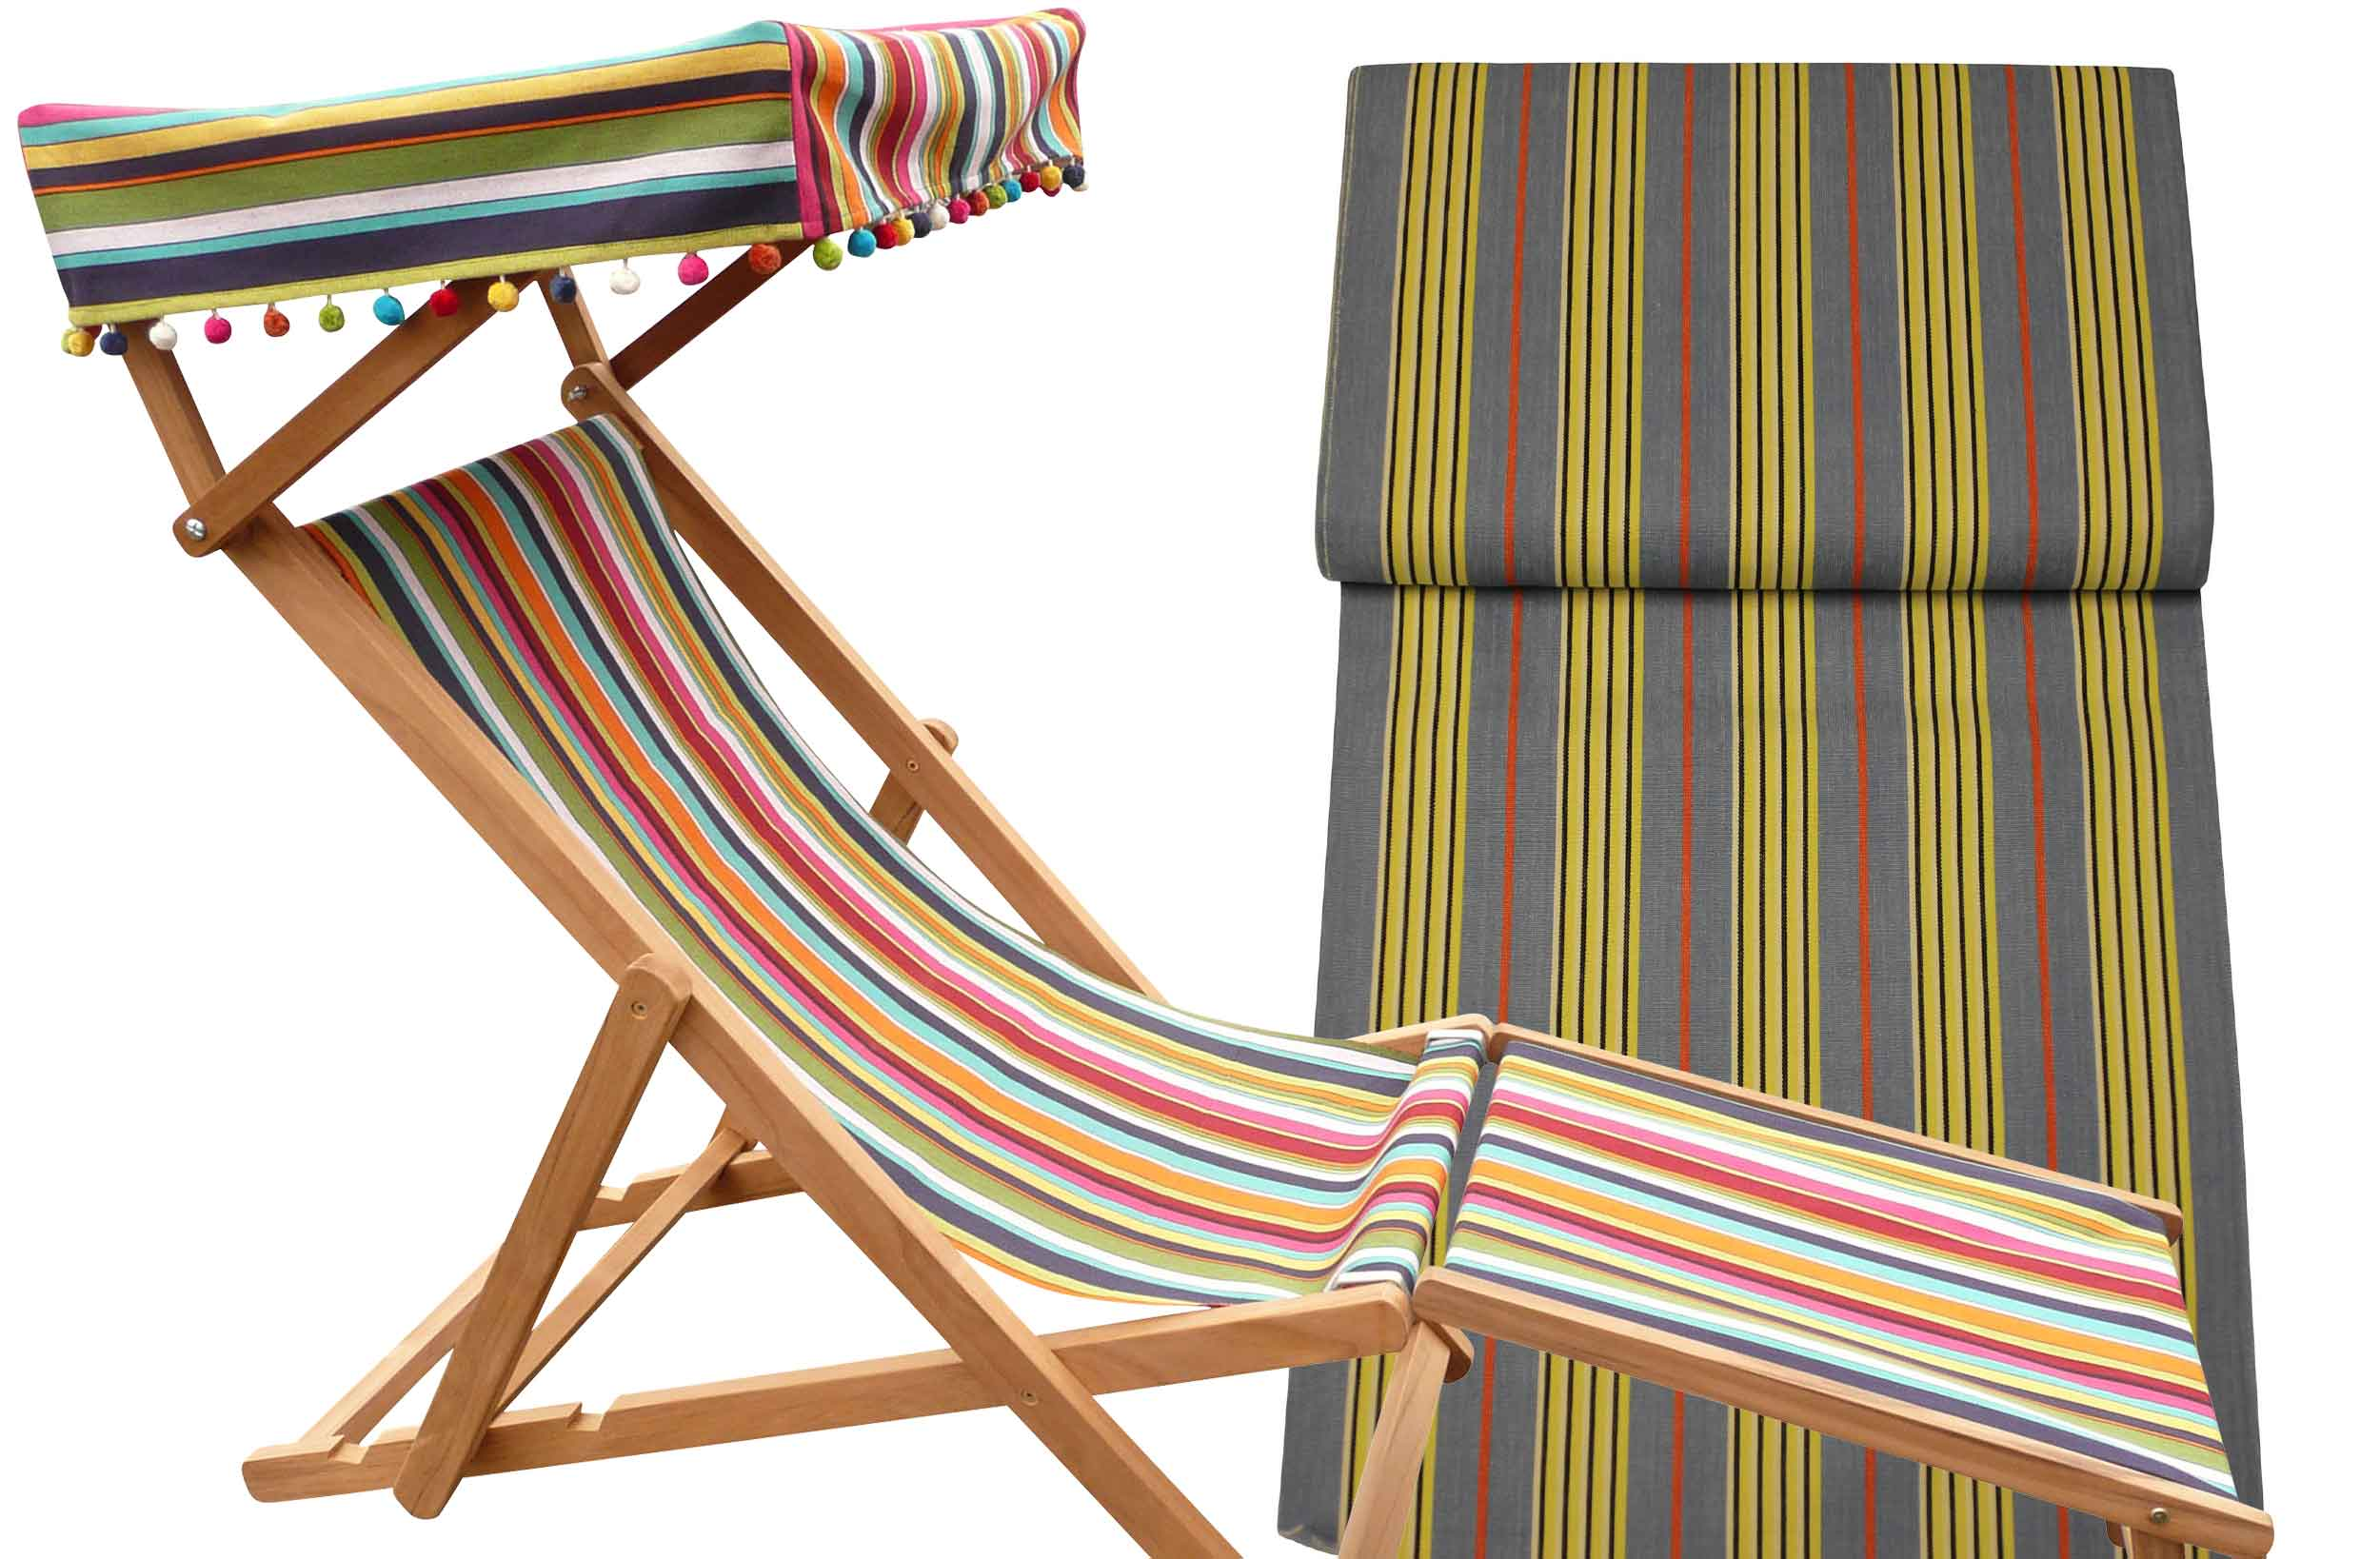 Edwardian Deckchairs with Canopy and Footstool sky blue, lemon, black